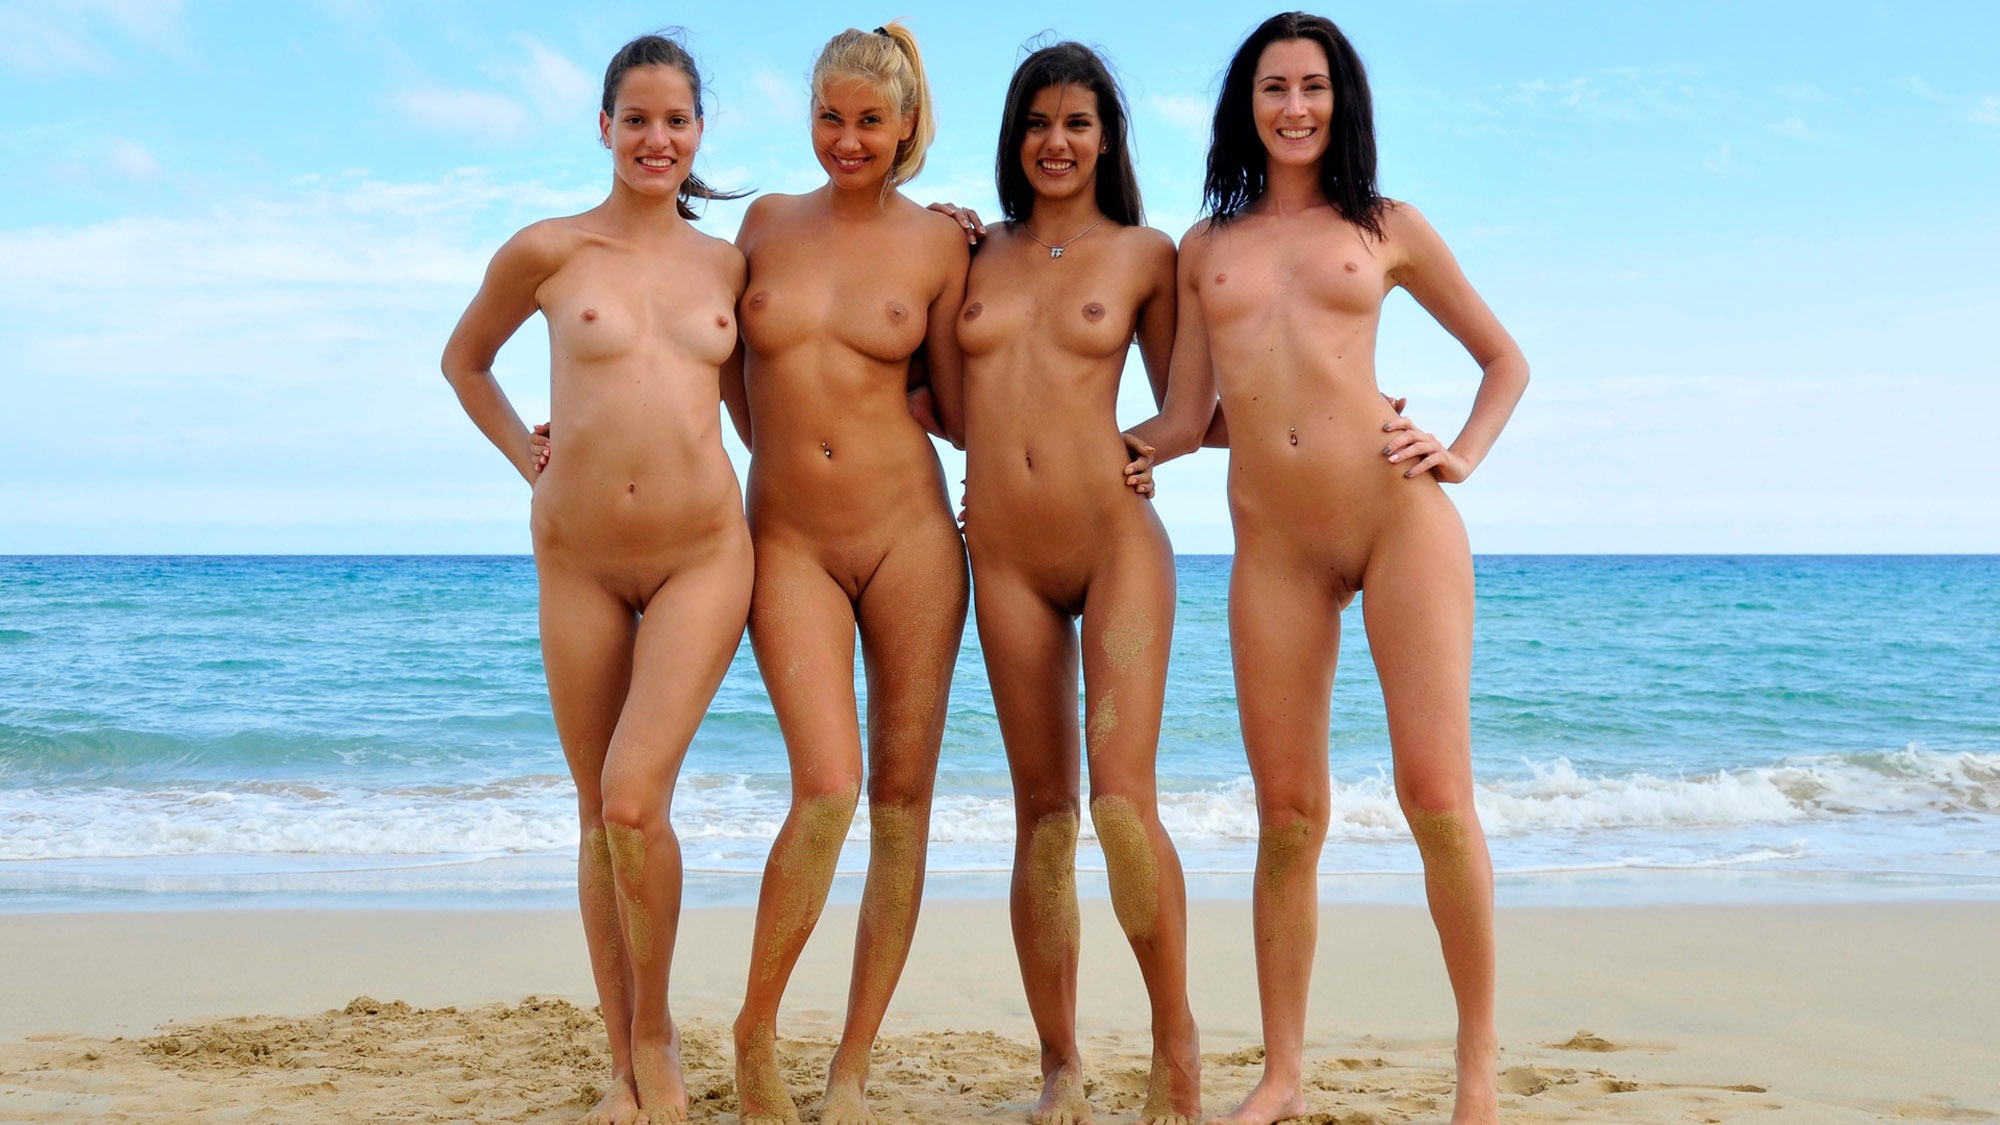 nude-college-girls-were-naked-in-beach-pics-girl-sex-psition-video